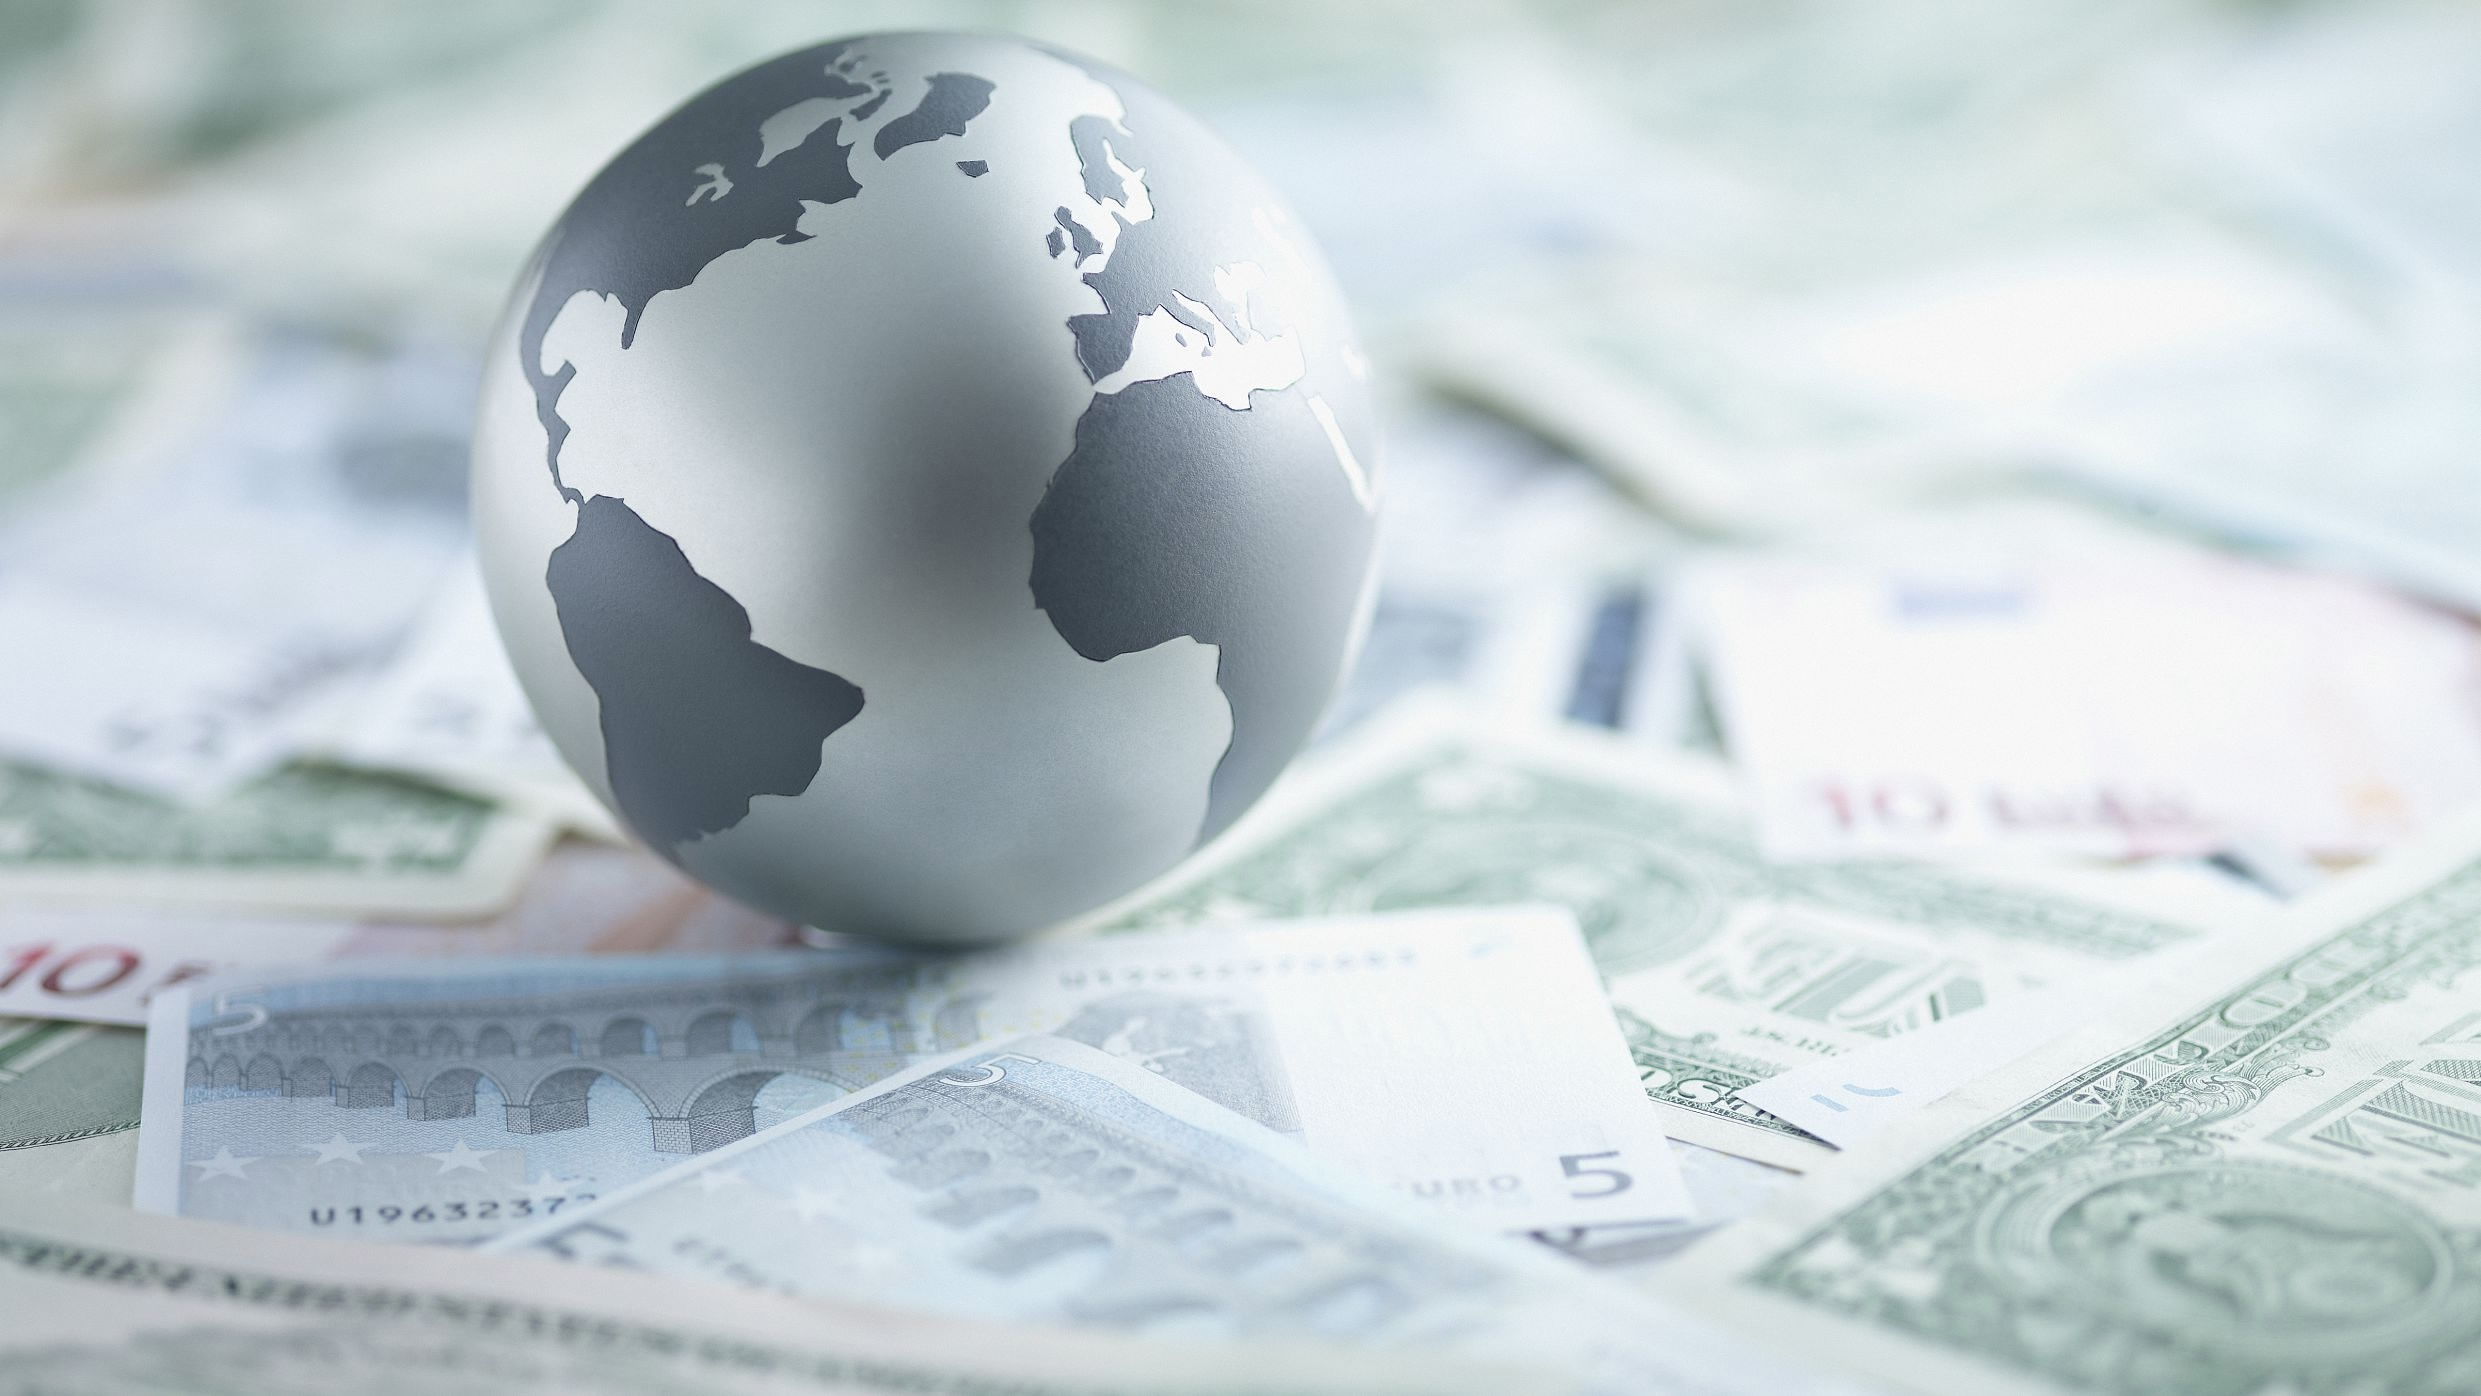 Latest news and headlines around the world related to the state of the global economy